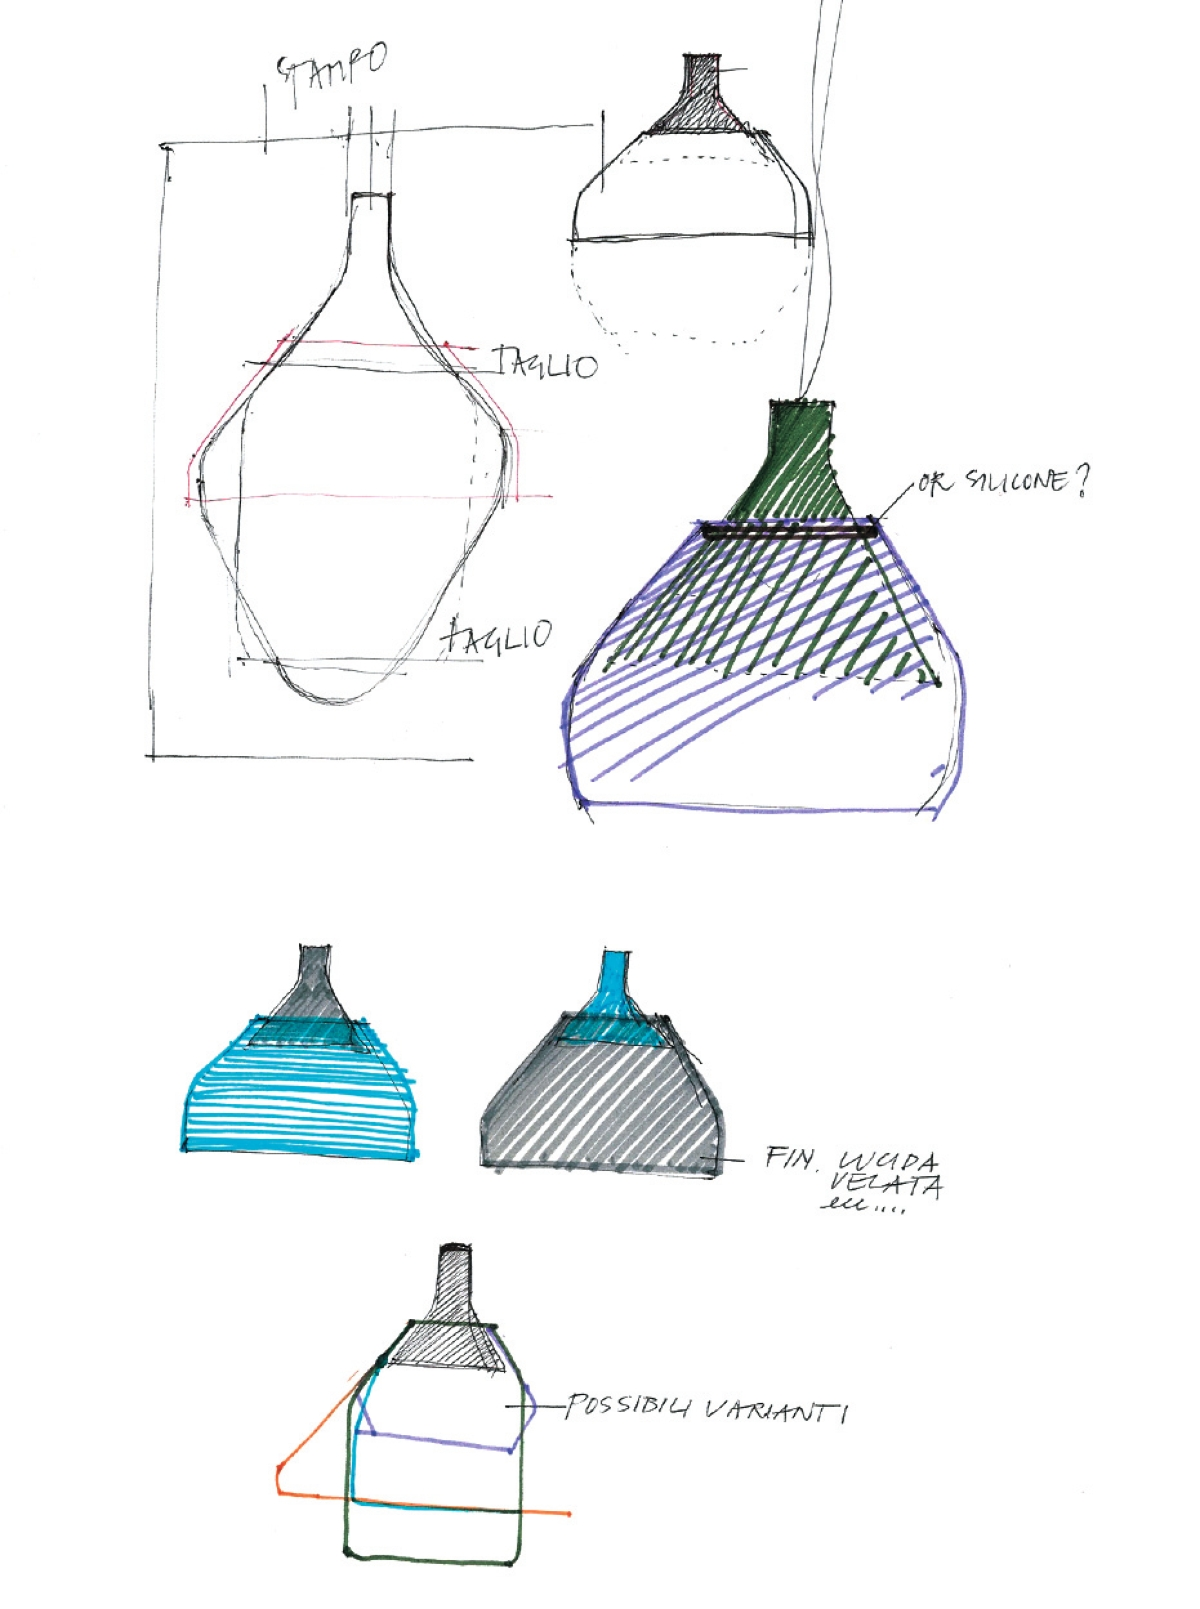 CAIIGO Suspension lamp sketch_3